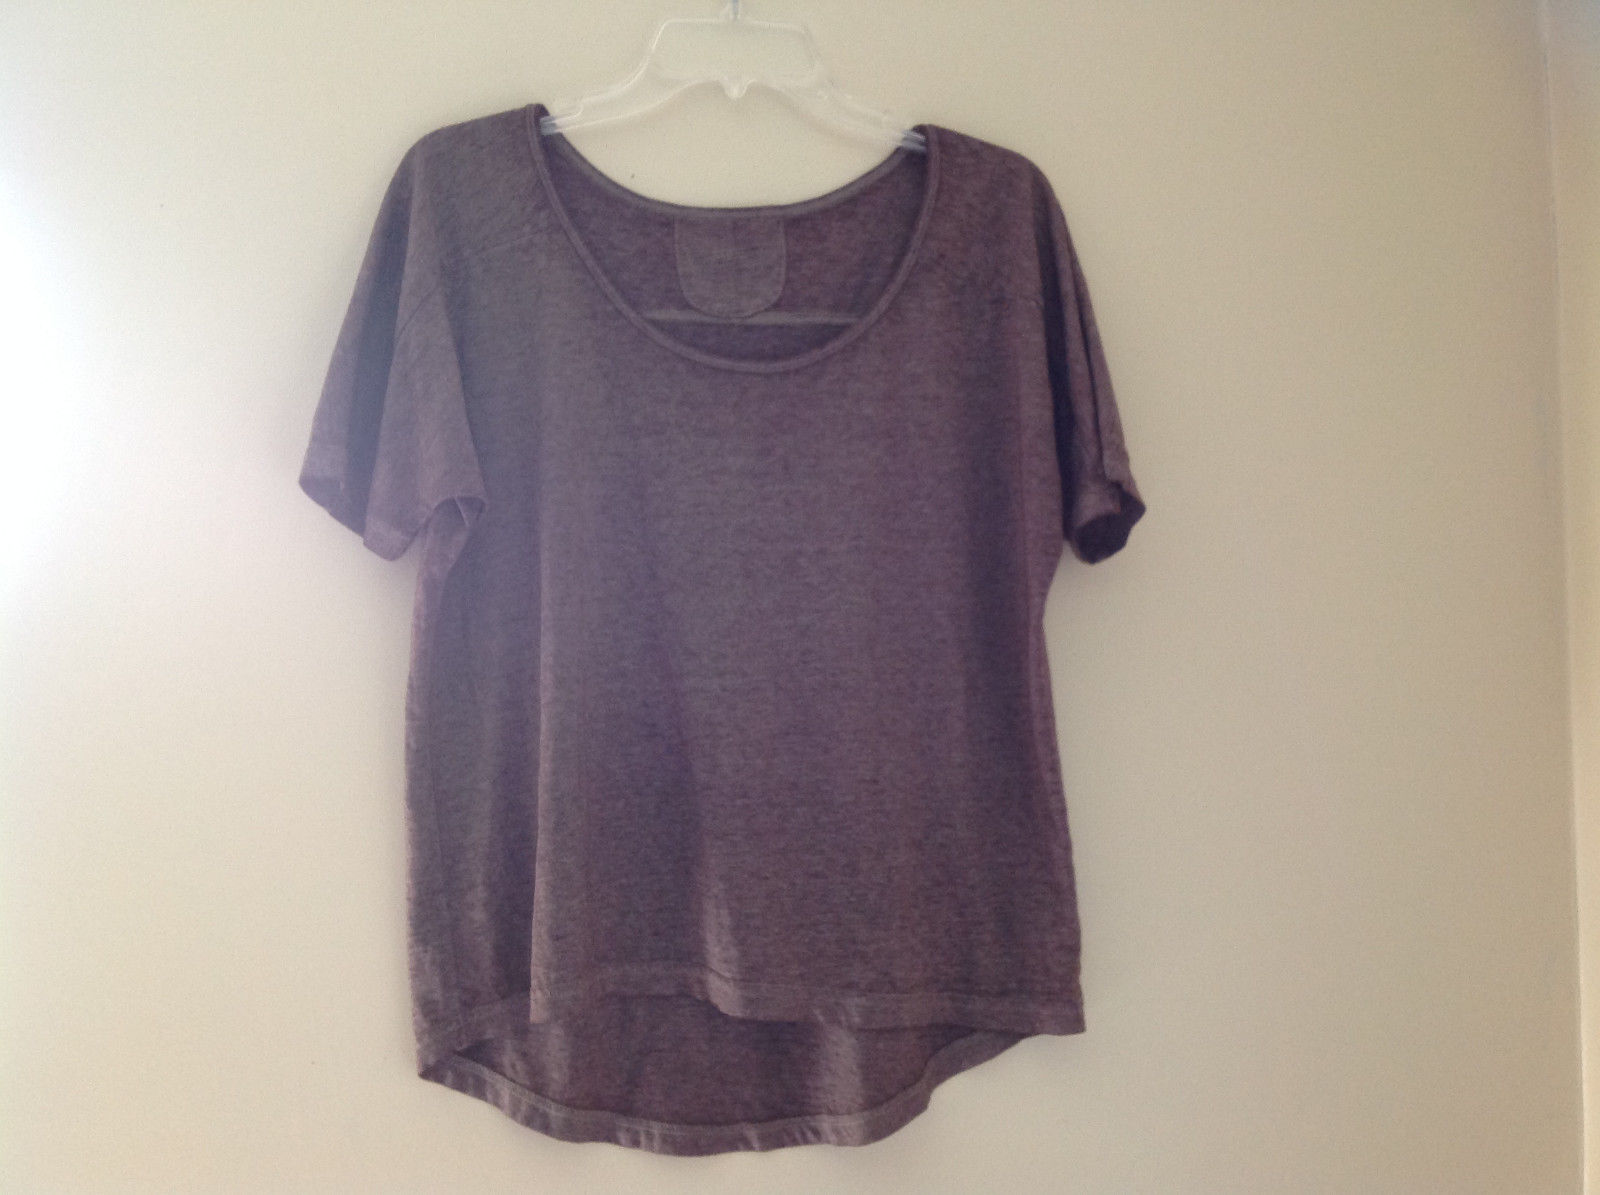 Arizona Dark Mauve Faded Scoop Neck High Low Waist Short Sleeves Shirt Size XL